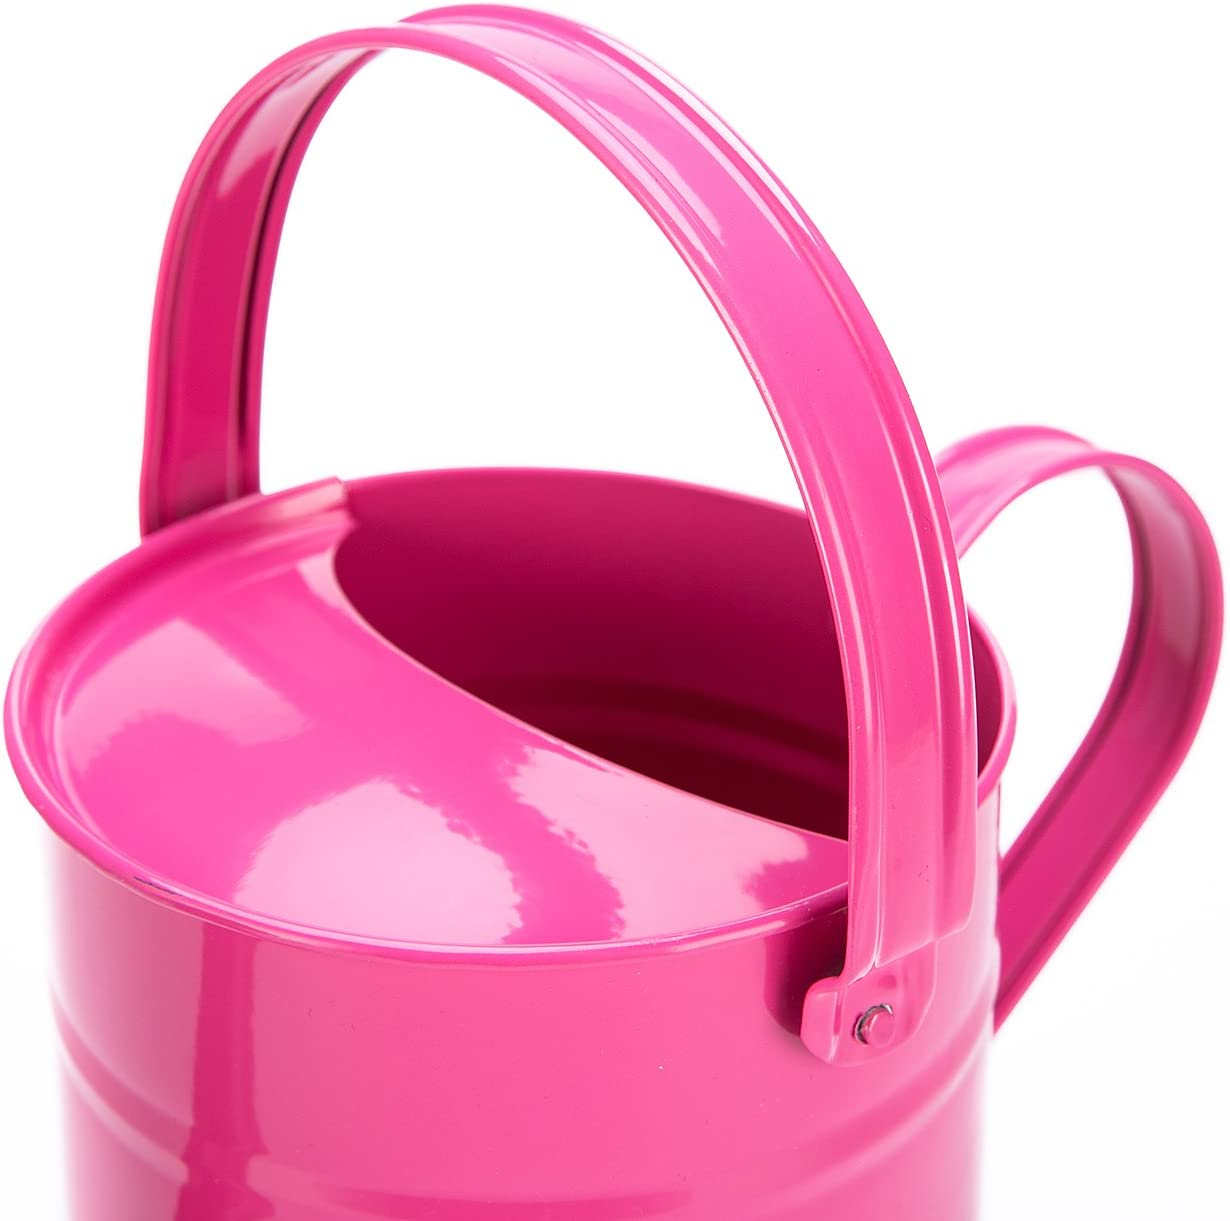 Sungmor 1.5 Liter Multi-Color Metal Watering Can,Kids Children Garden Watering Bucket with Anti-Rust Powder Coating Treatment and Beautiful Blue Color